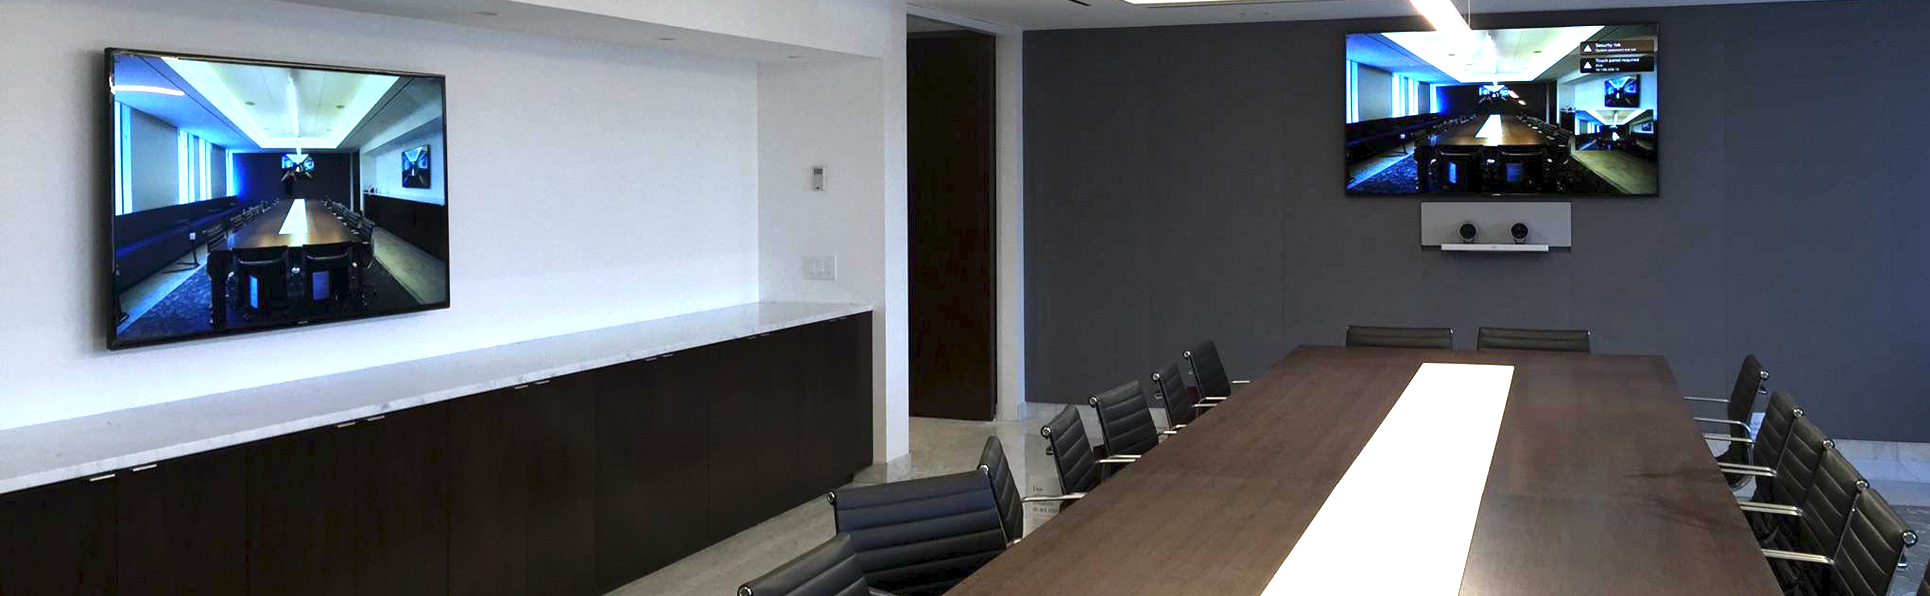 corporate boardroom systems